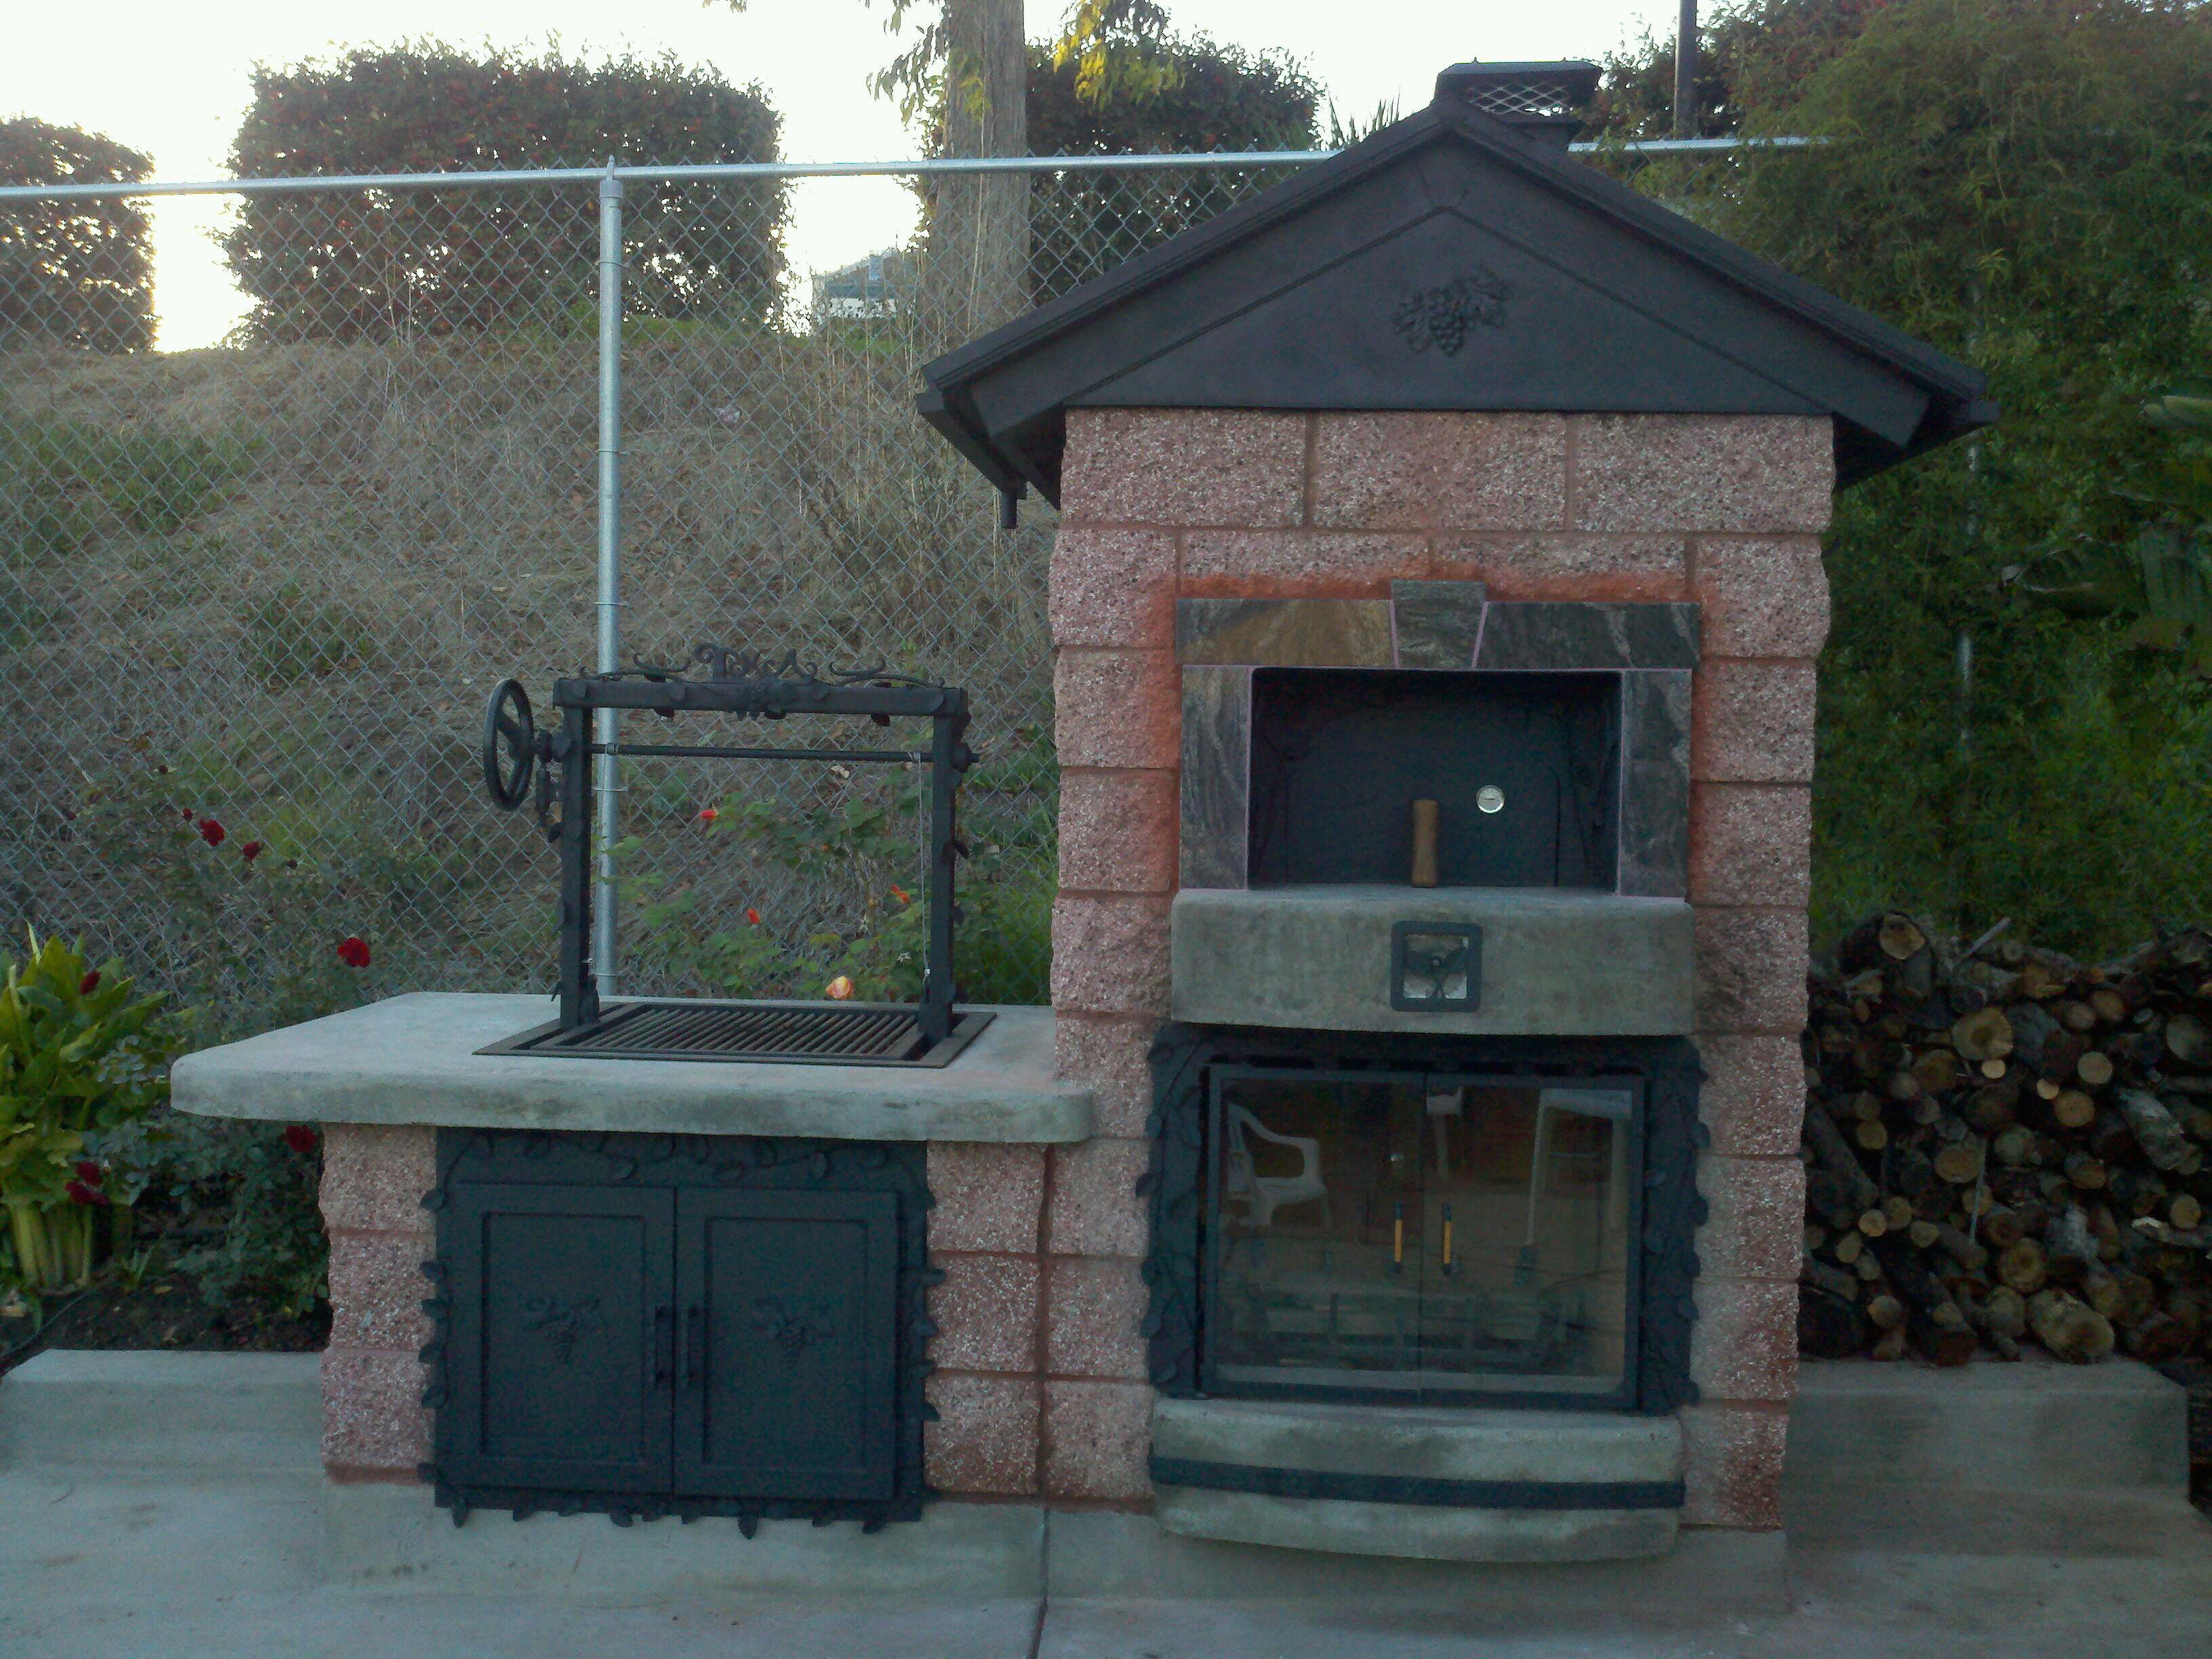 Outdoor pizza ovens custom outdoor kitchen lc oven - Outdoor kitchen pizza oven design ...